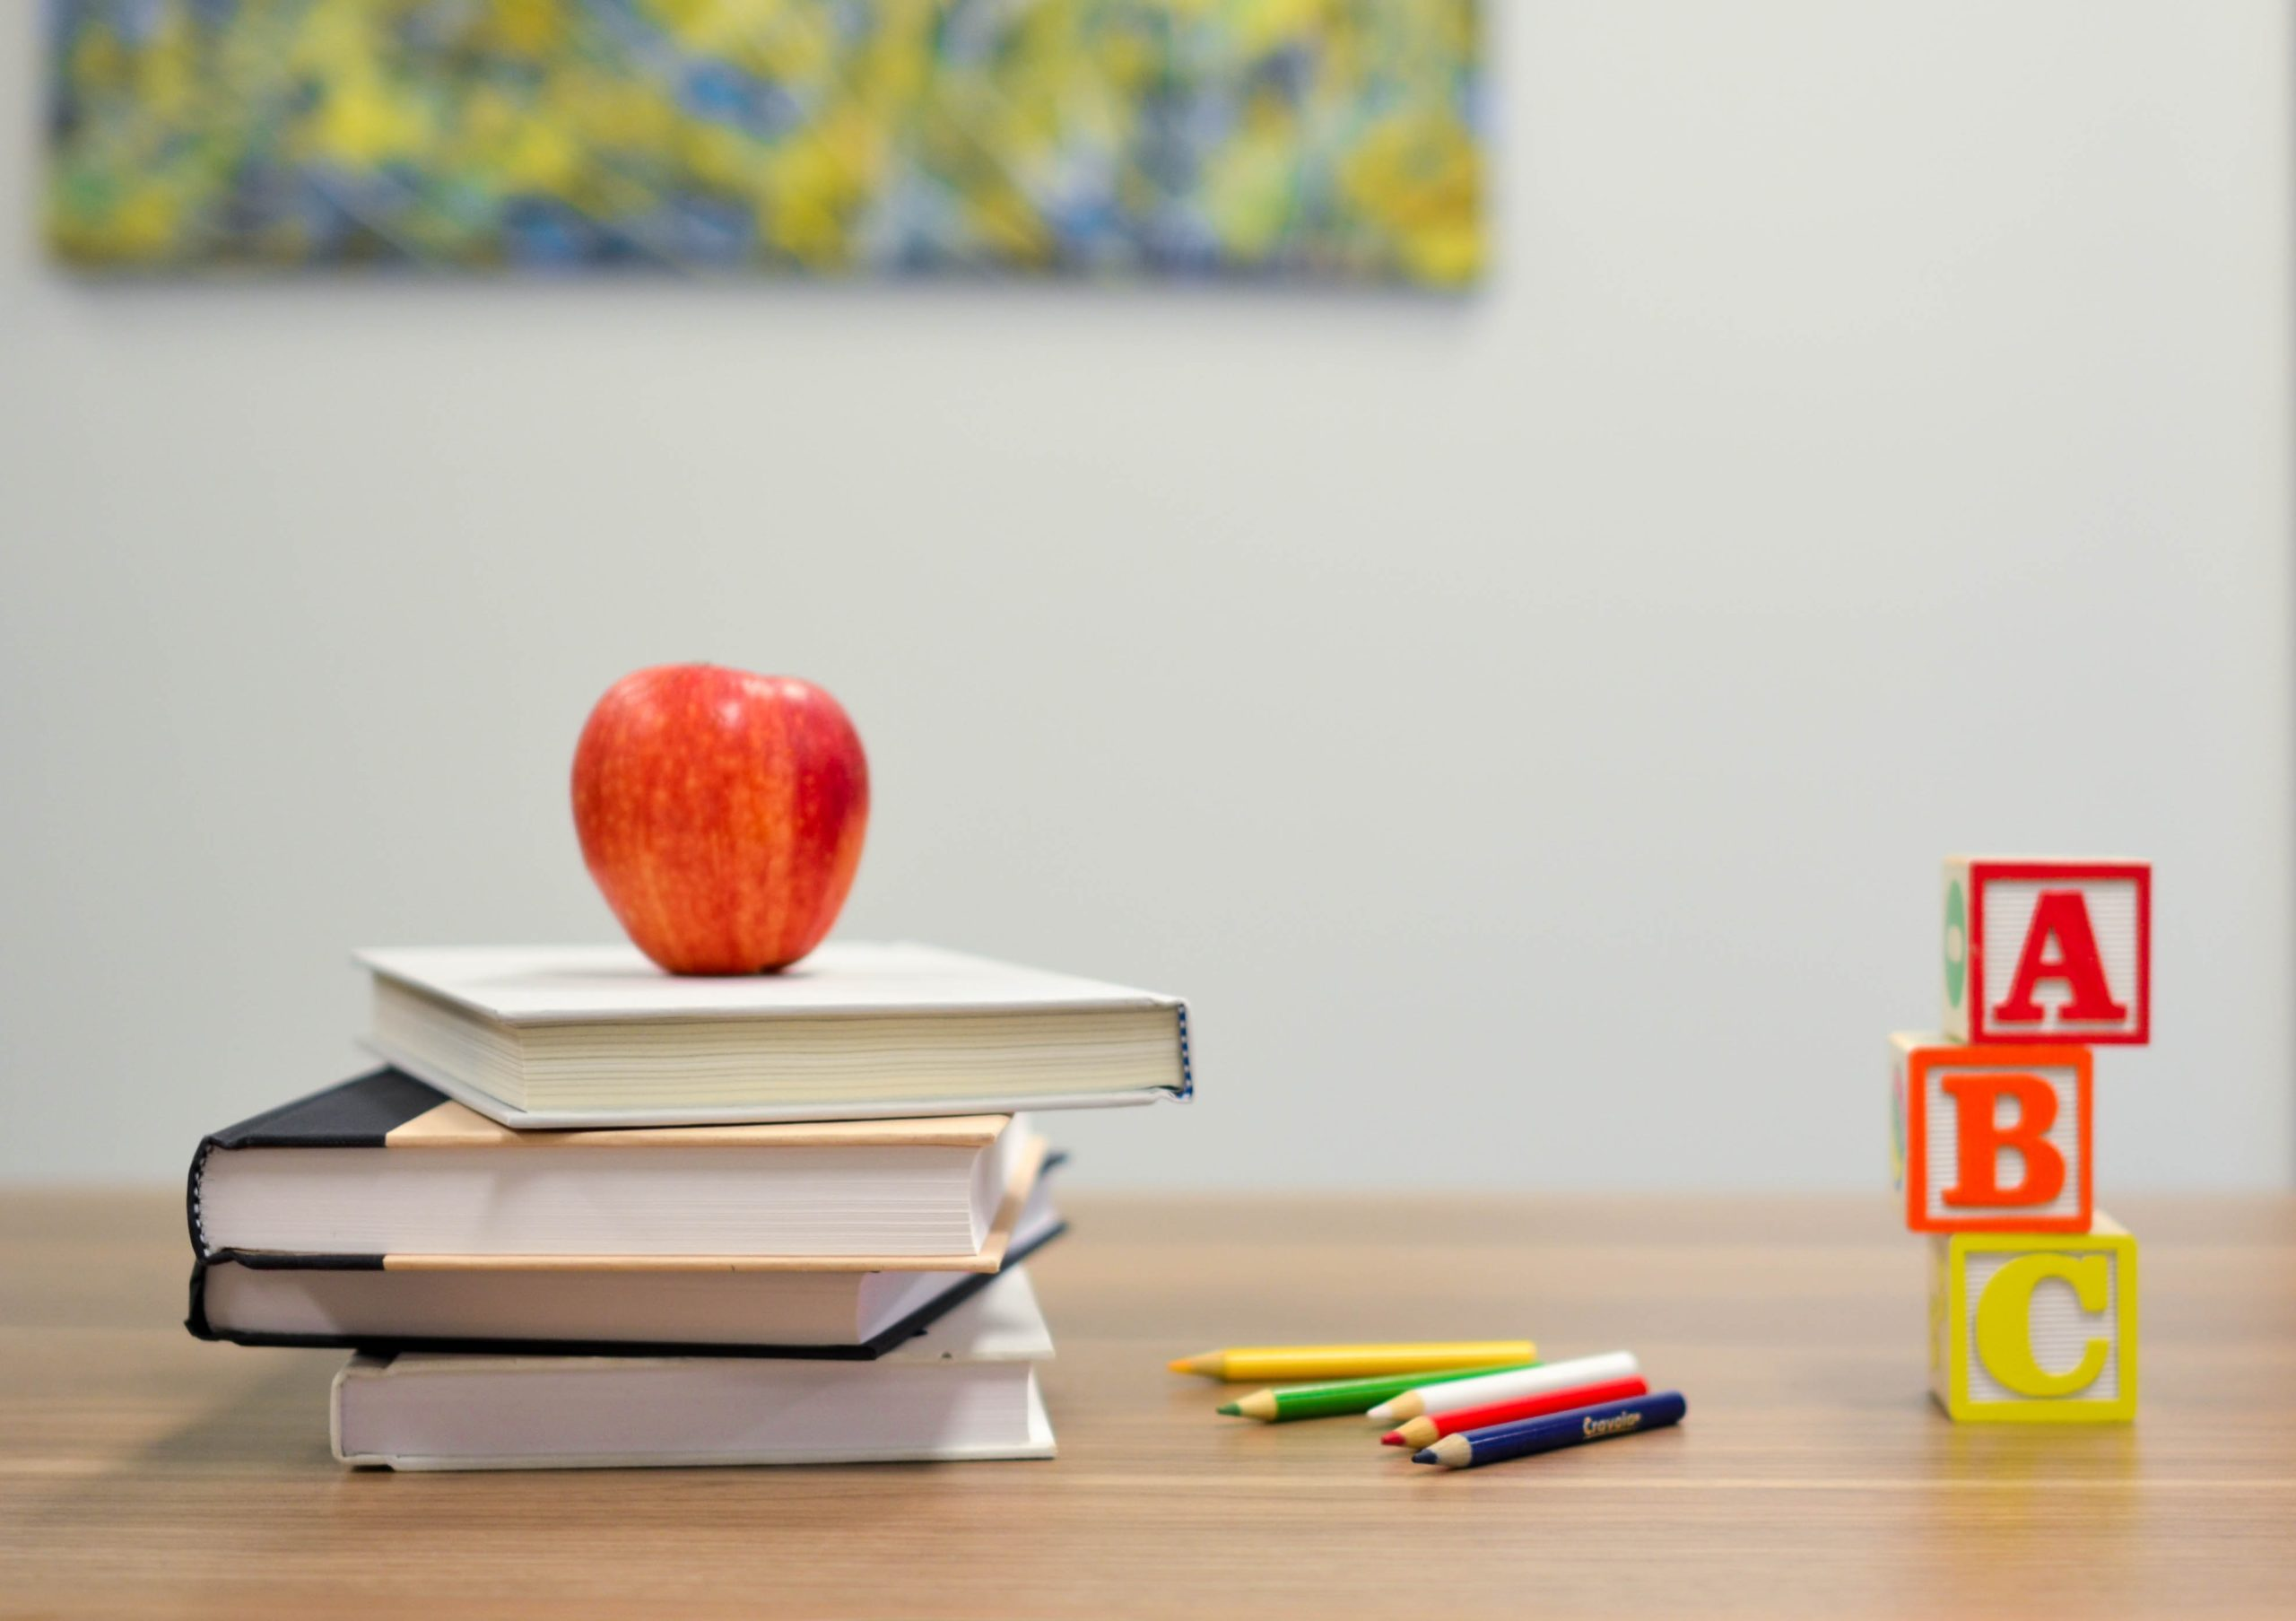 books on top of desk with an apple on top and other school supplies